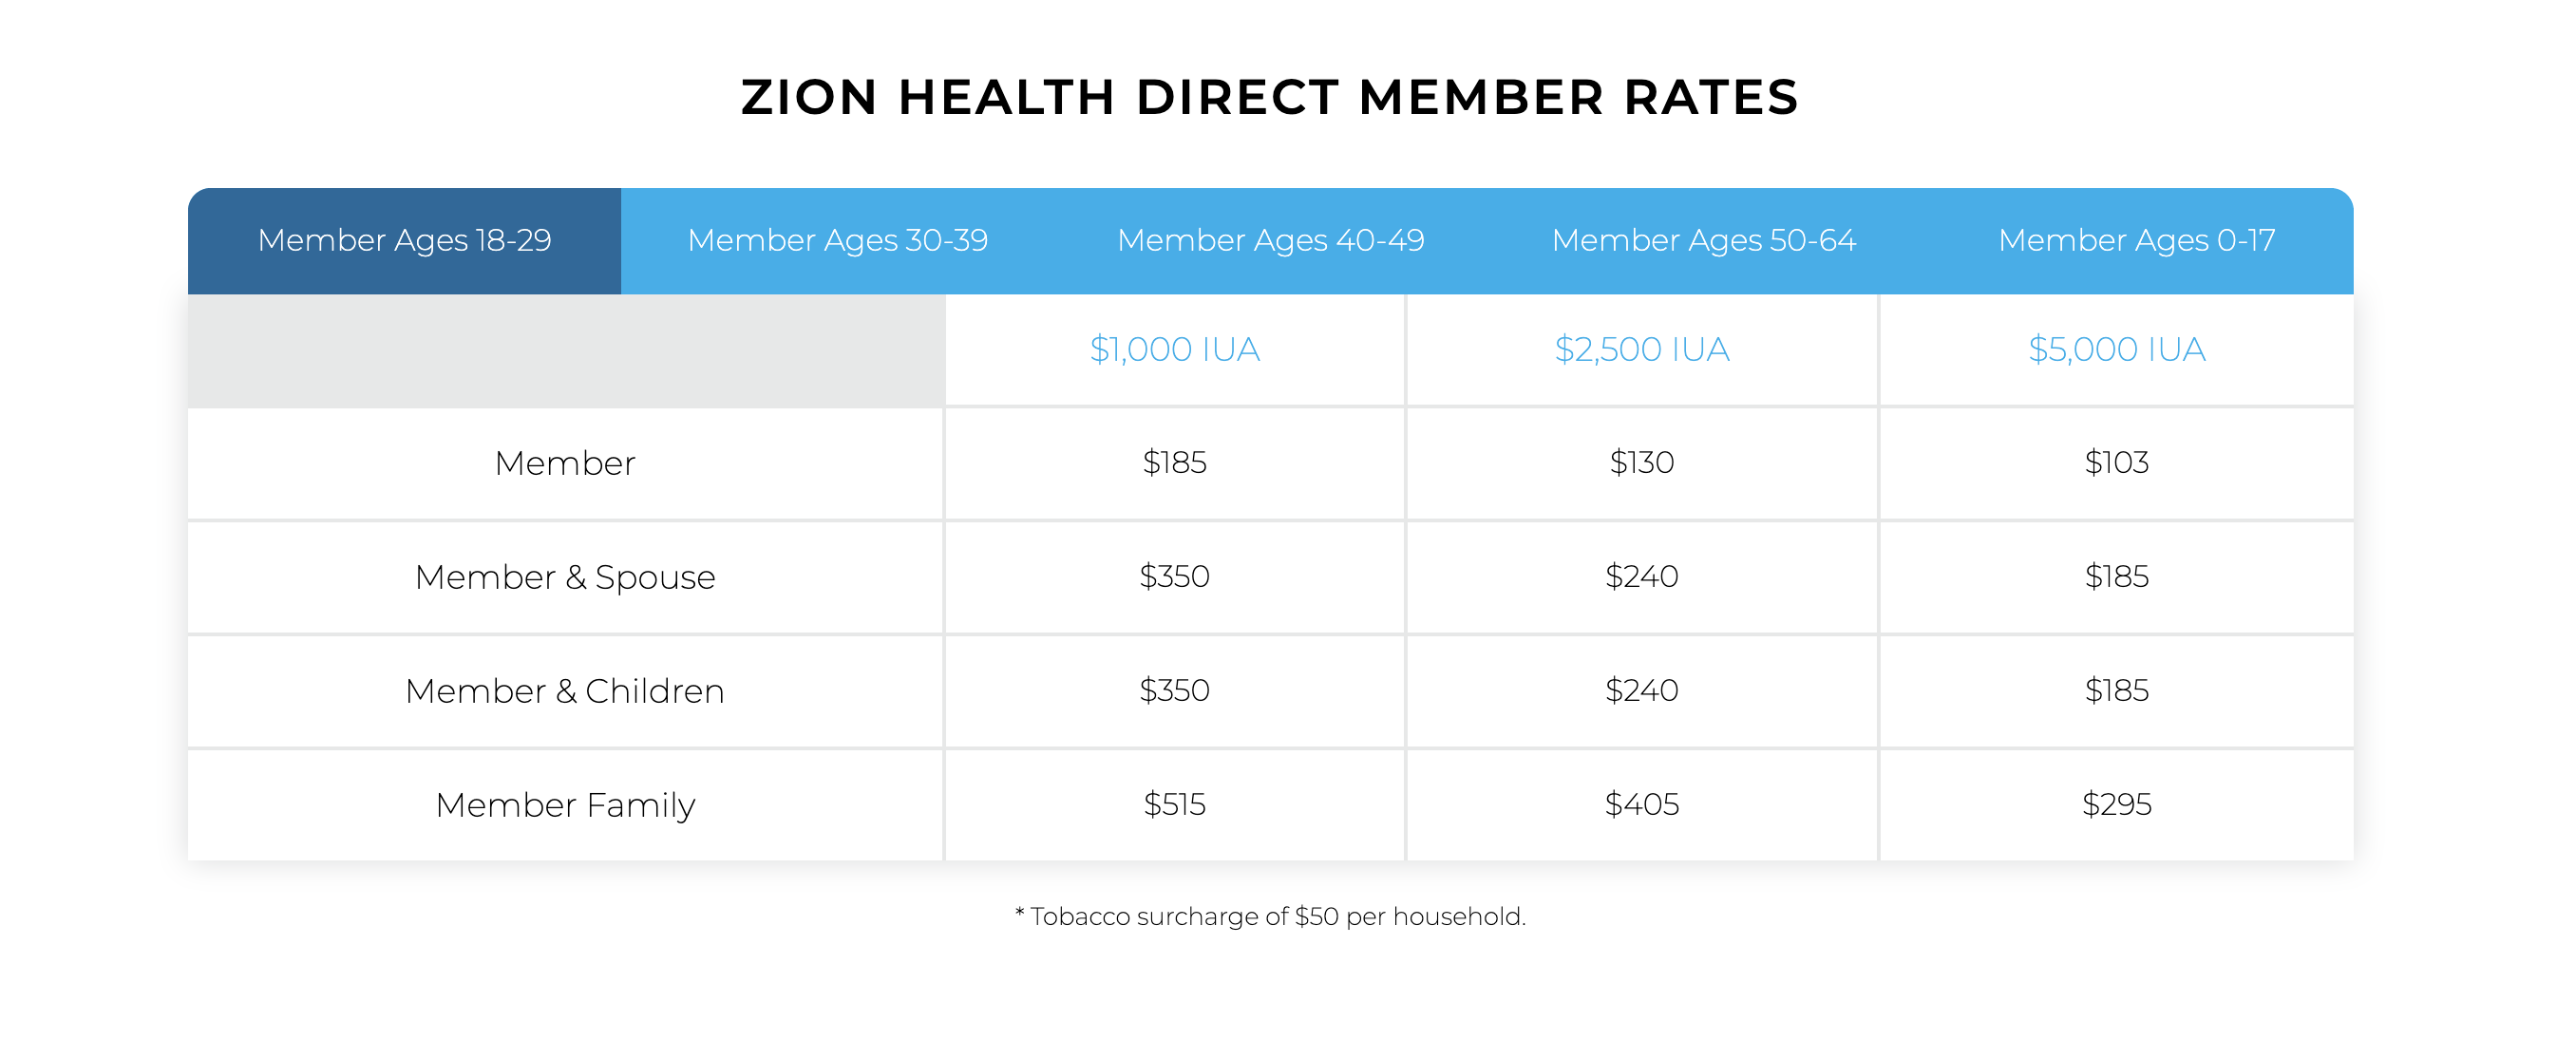 zion direct member rates